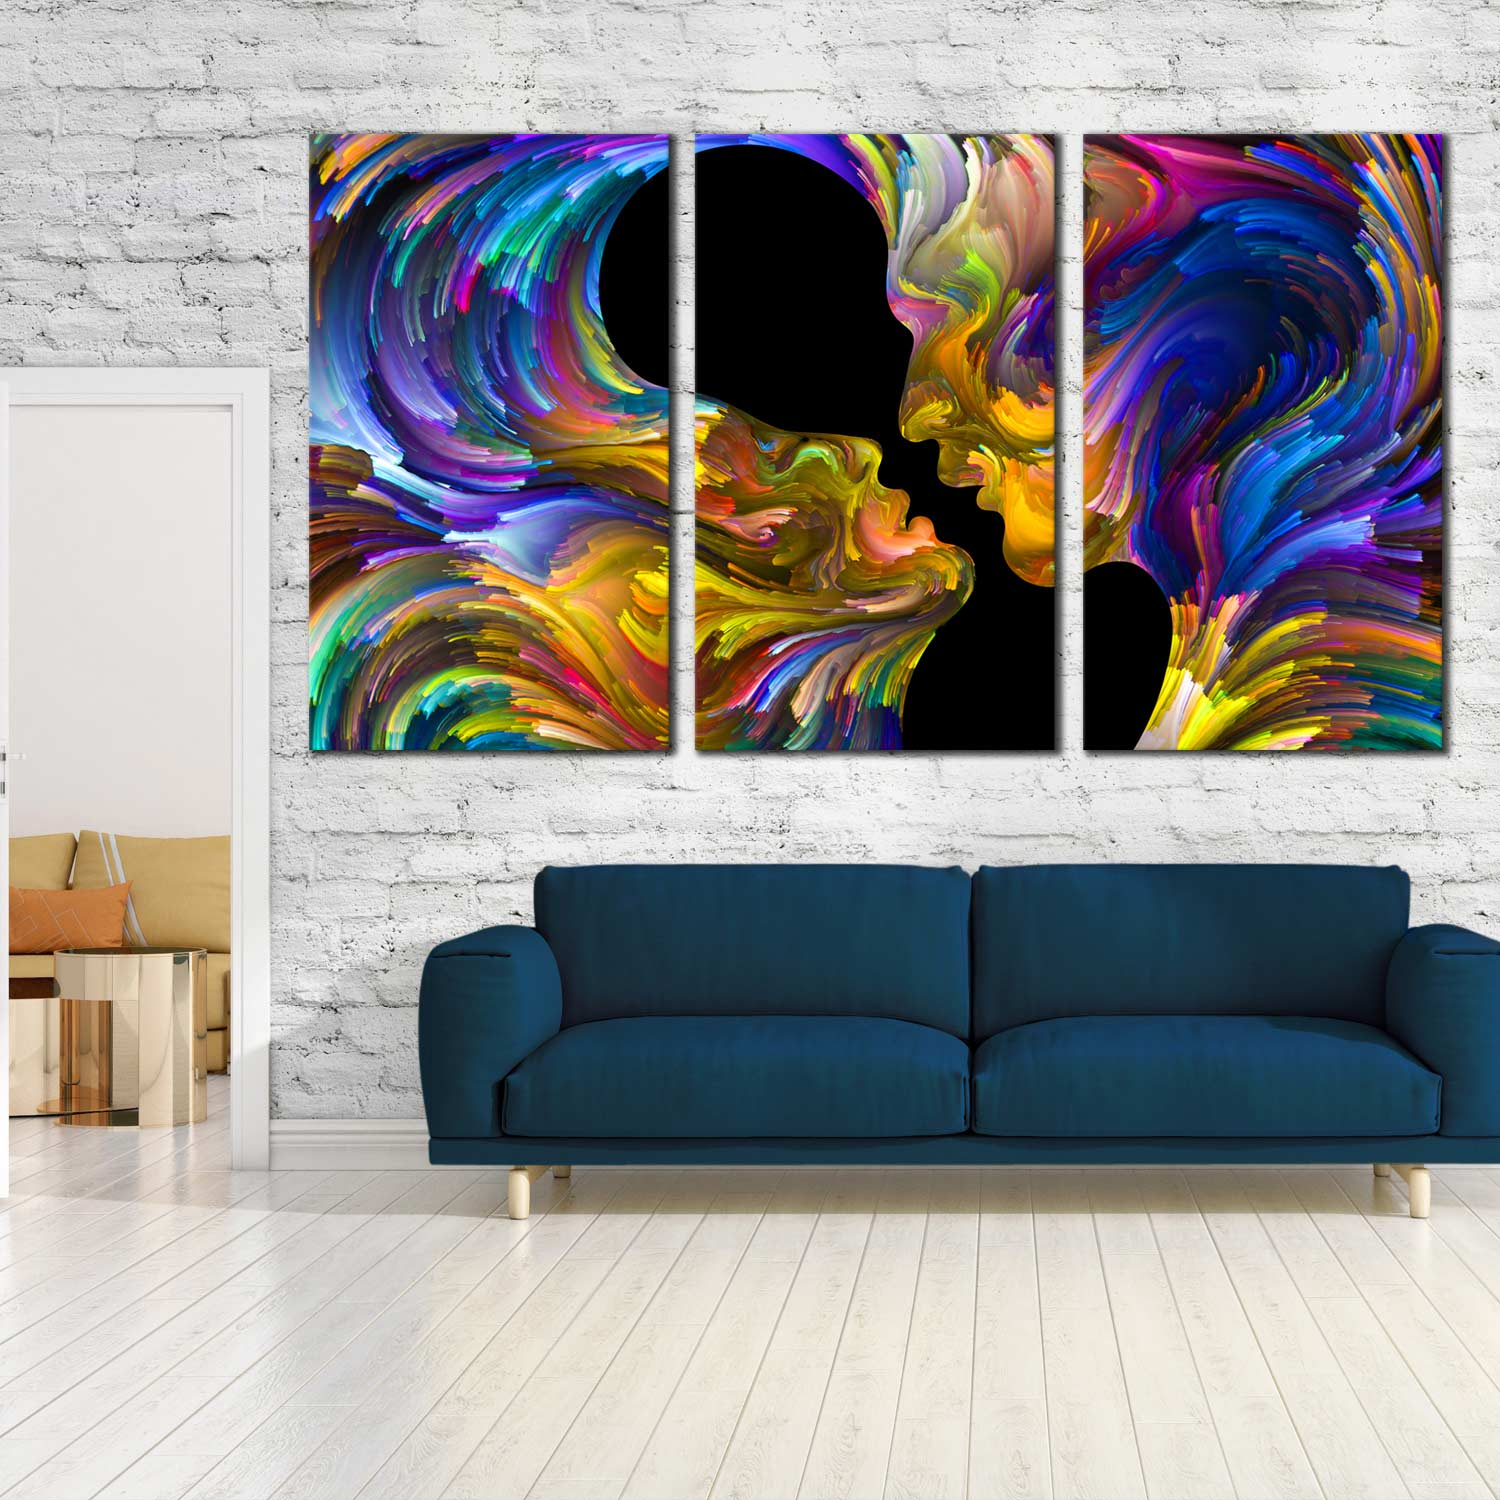 Abstract Swirl Canvas Wall Art Colorful Couples Kiss 3 Piece Canvas Print Romantic Sensual Humans Triptych Multi Canvas Artwork